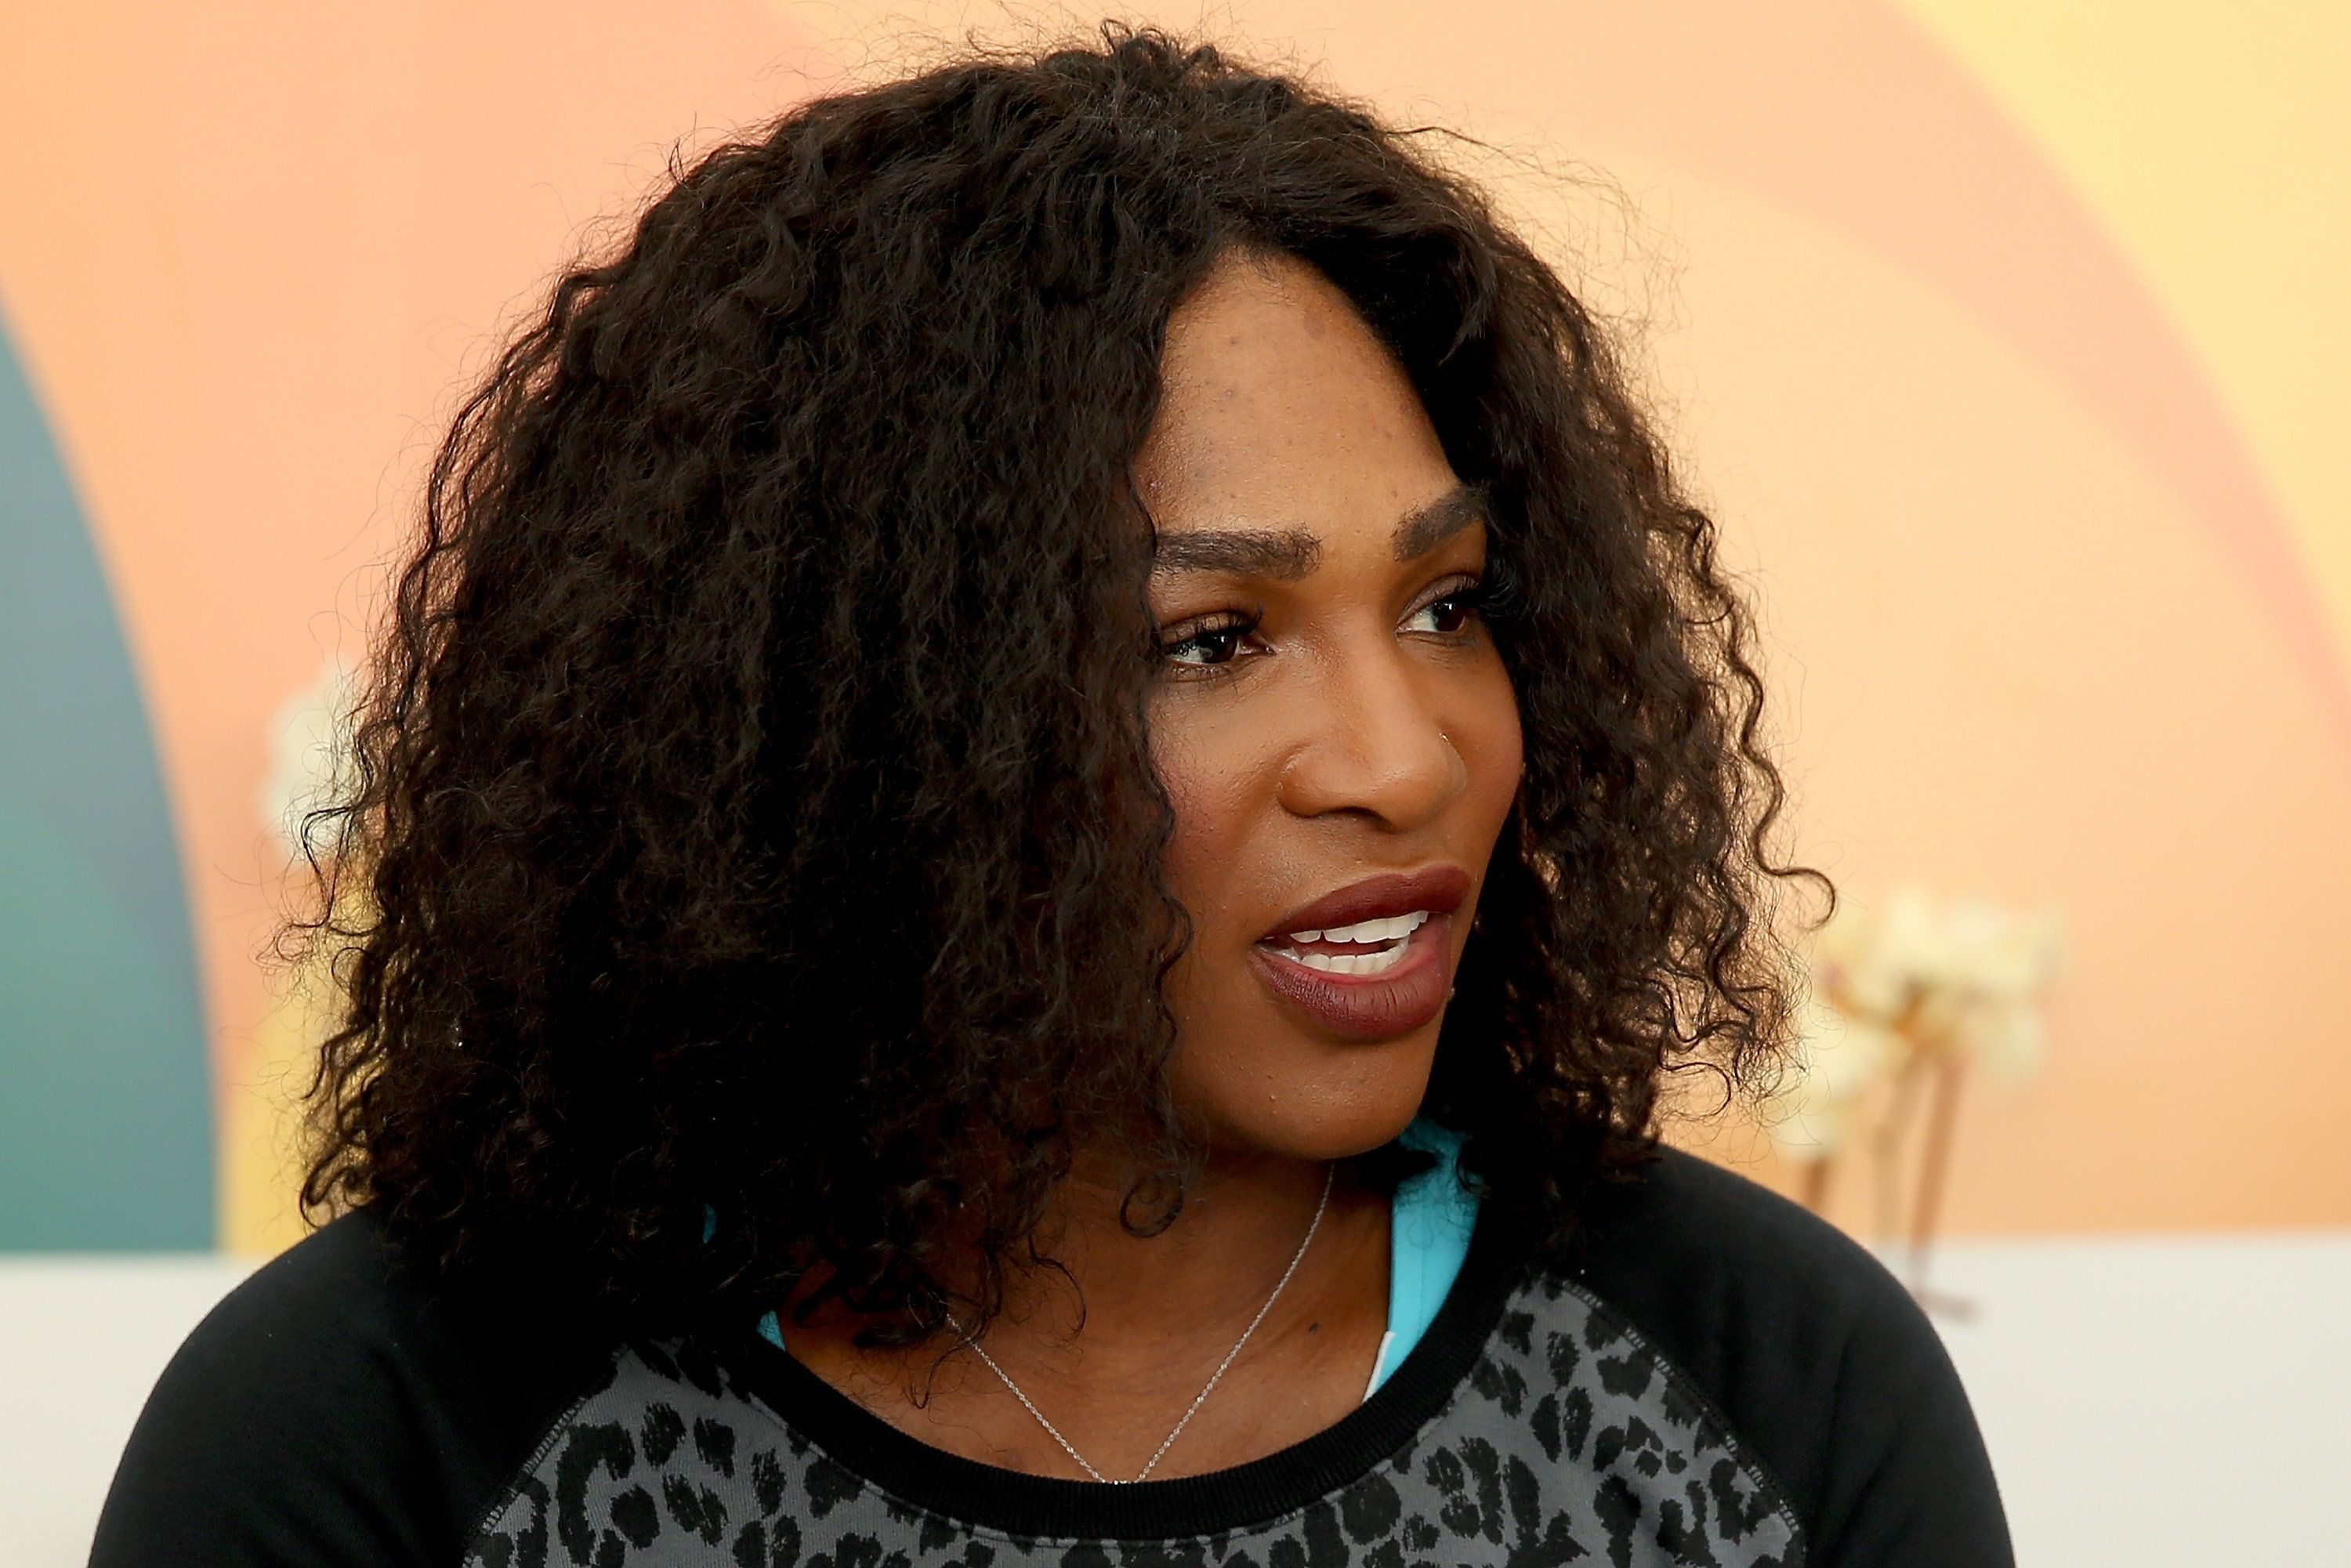 KEY BISCAYNE, FL - MARCH 22:  Serena Williams fields questions from the media during the Miami Open presented by Itau at Crandon Park Tennis Center on March 22, 2016 in Key Biscayne, Florida.  (Photo by Matthew Stockman/Getty Images)